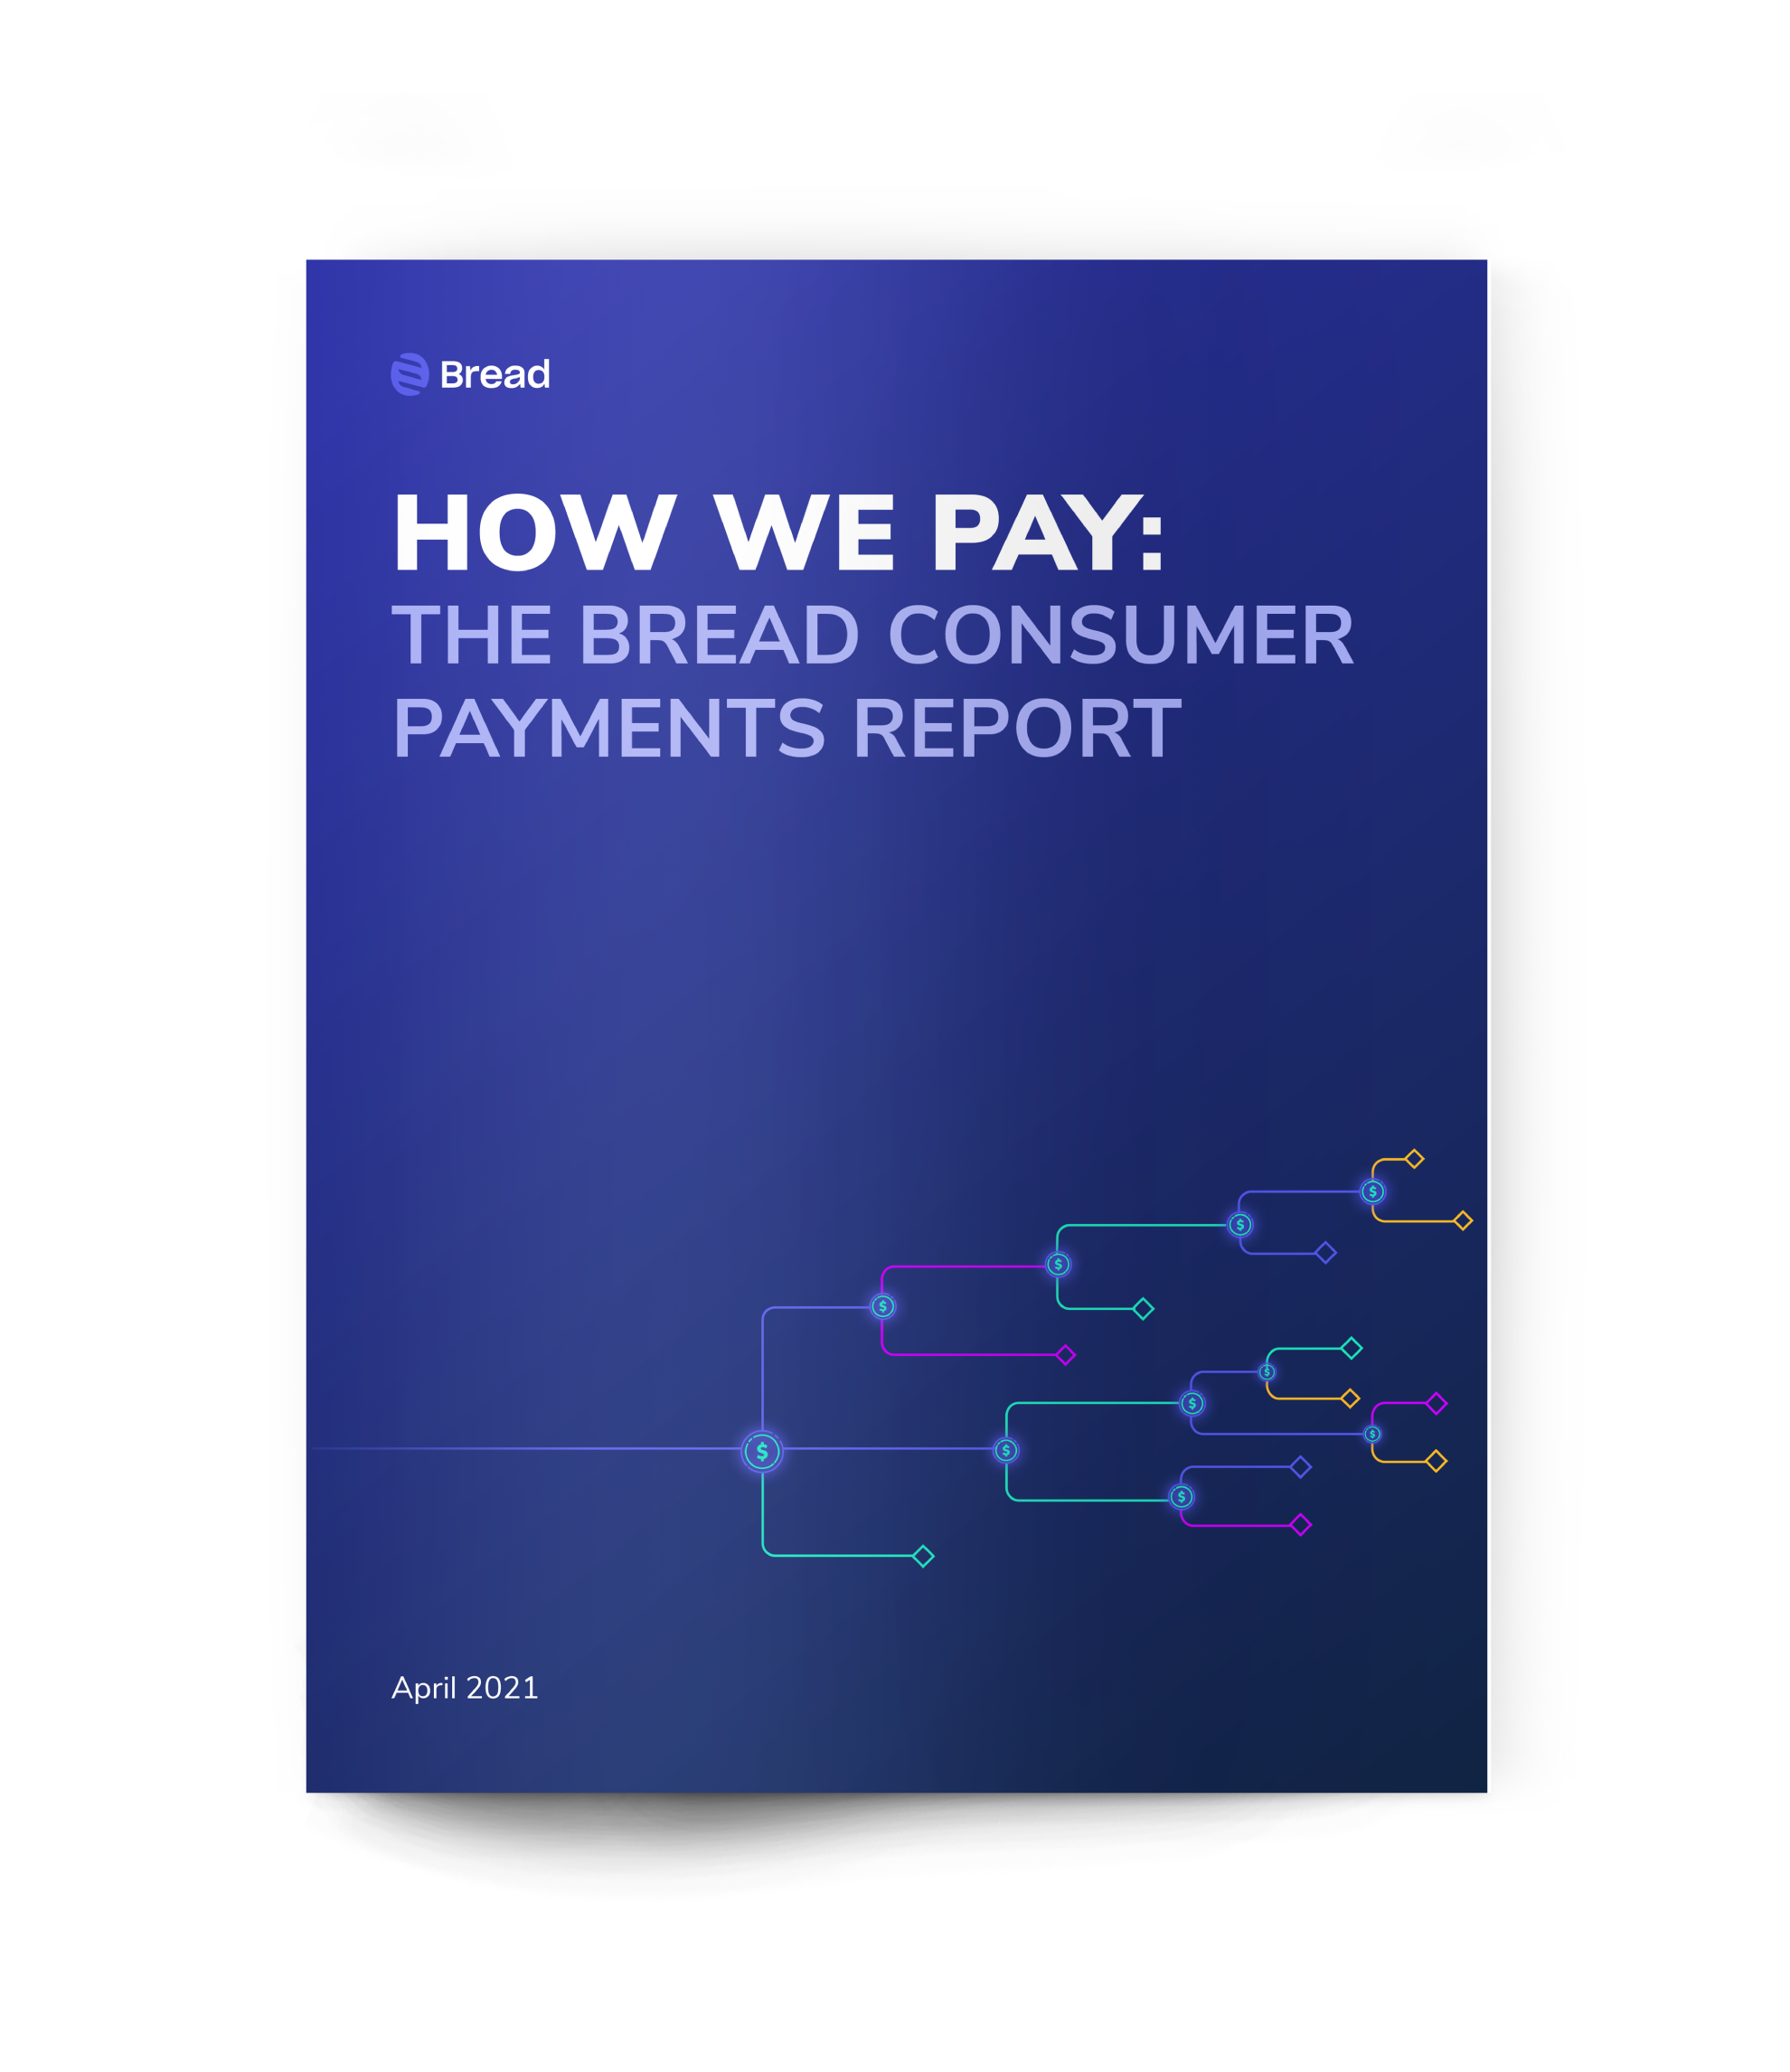 How We Pay: The Bread Consumer Payments Report